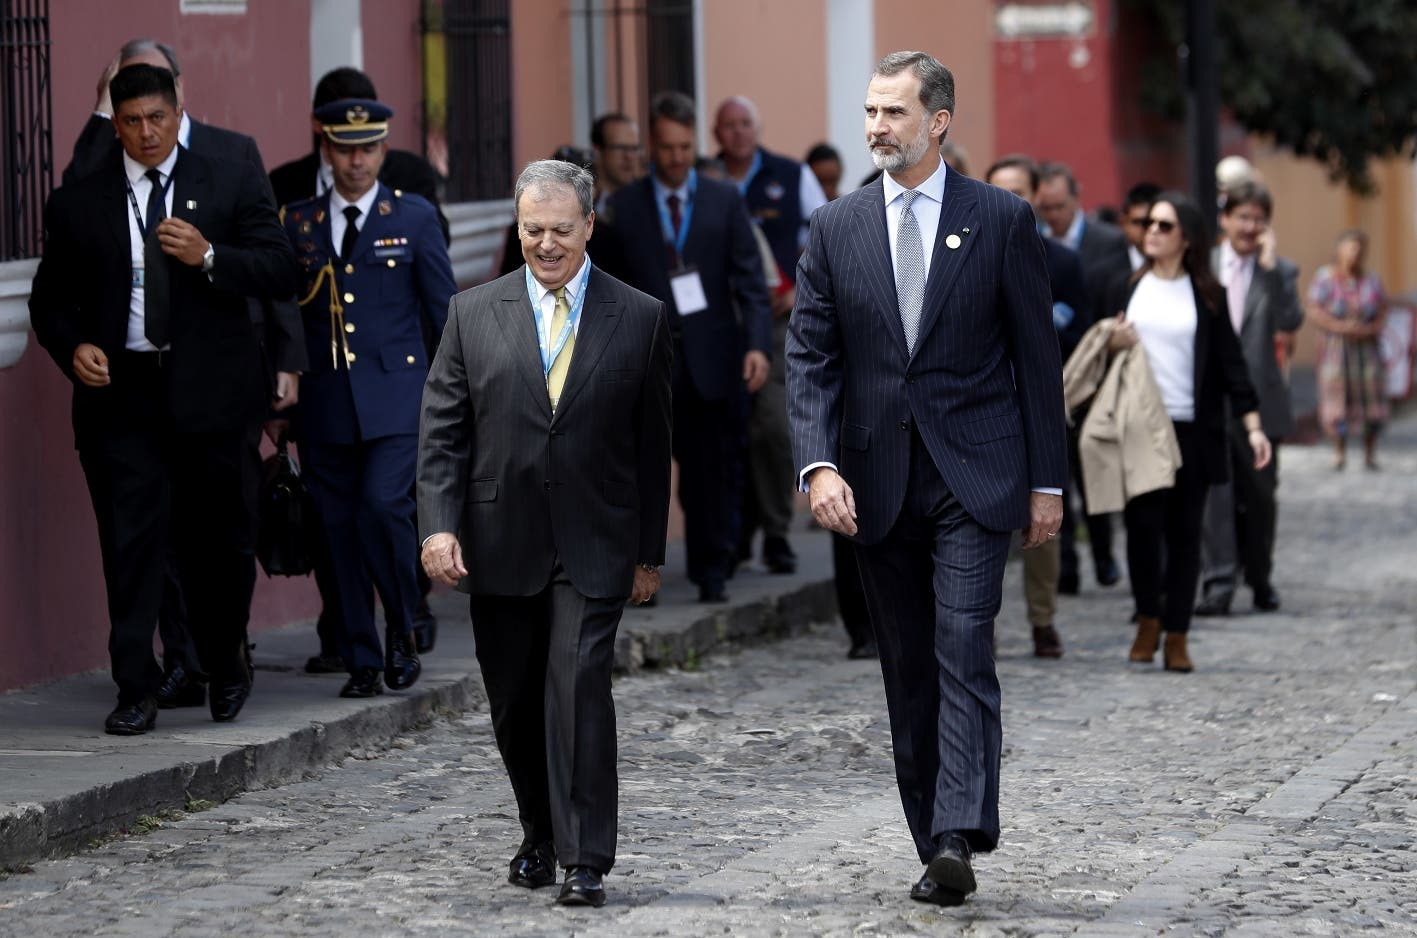 Spain's King Felipe, front right, is accompanied by Spain's ambassador to Guatemala, Alfonso Portabales, as they walk through the streets of Antigua, Guatemala, Thursday, Nov. 15, 2018. The King is taking part in the XXVI Iberoamerican Summit, a biennial two-day meeting of heads of state from Latin America and the Iberian Peninsula. (AP Photo/Moises Castillo)